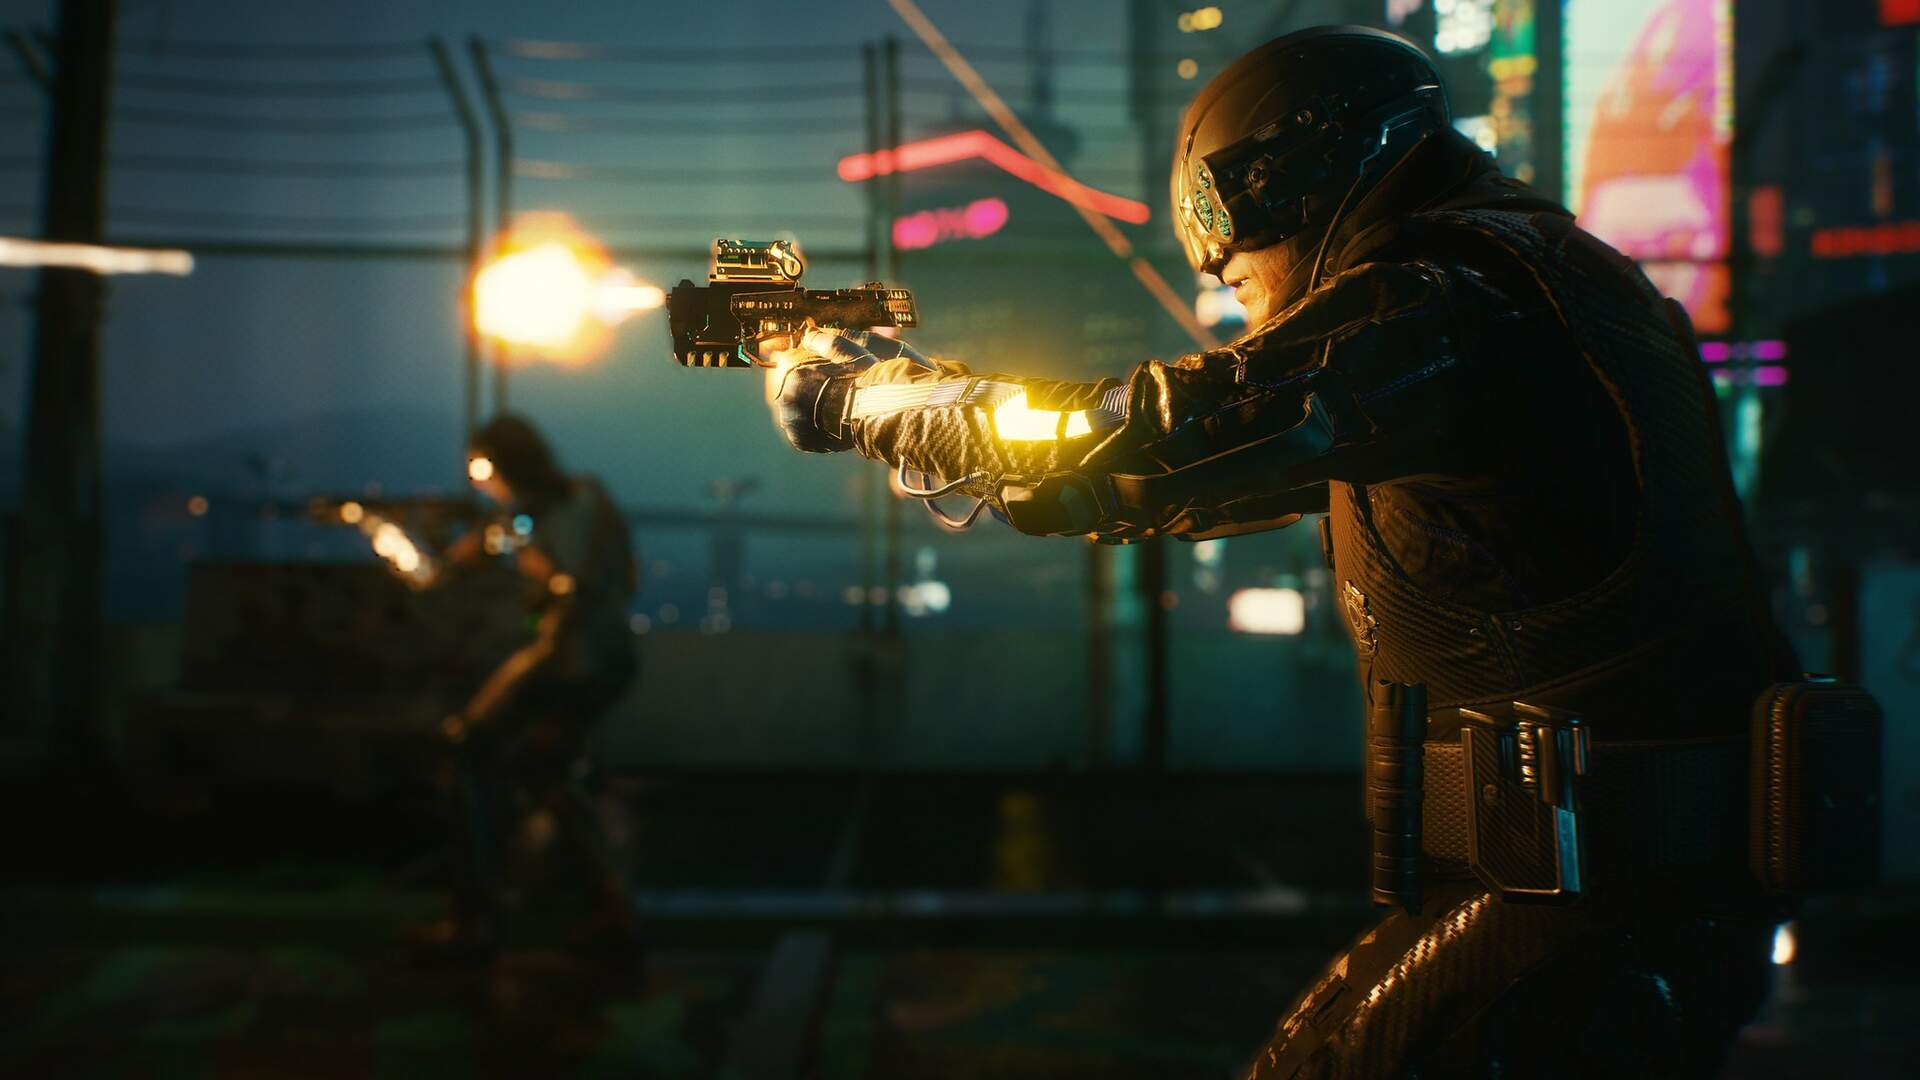 Cyberpunk 2077's Reported Epileptic Triggers Draw Warnings From Advocates [Update: CDPR Responds]